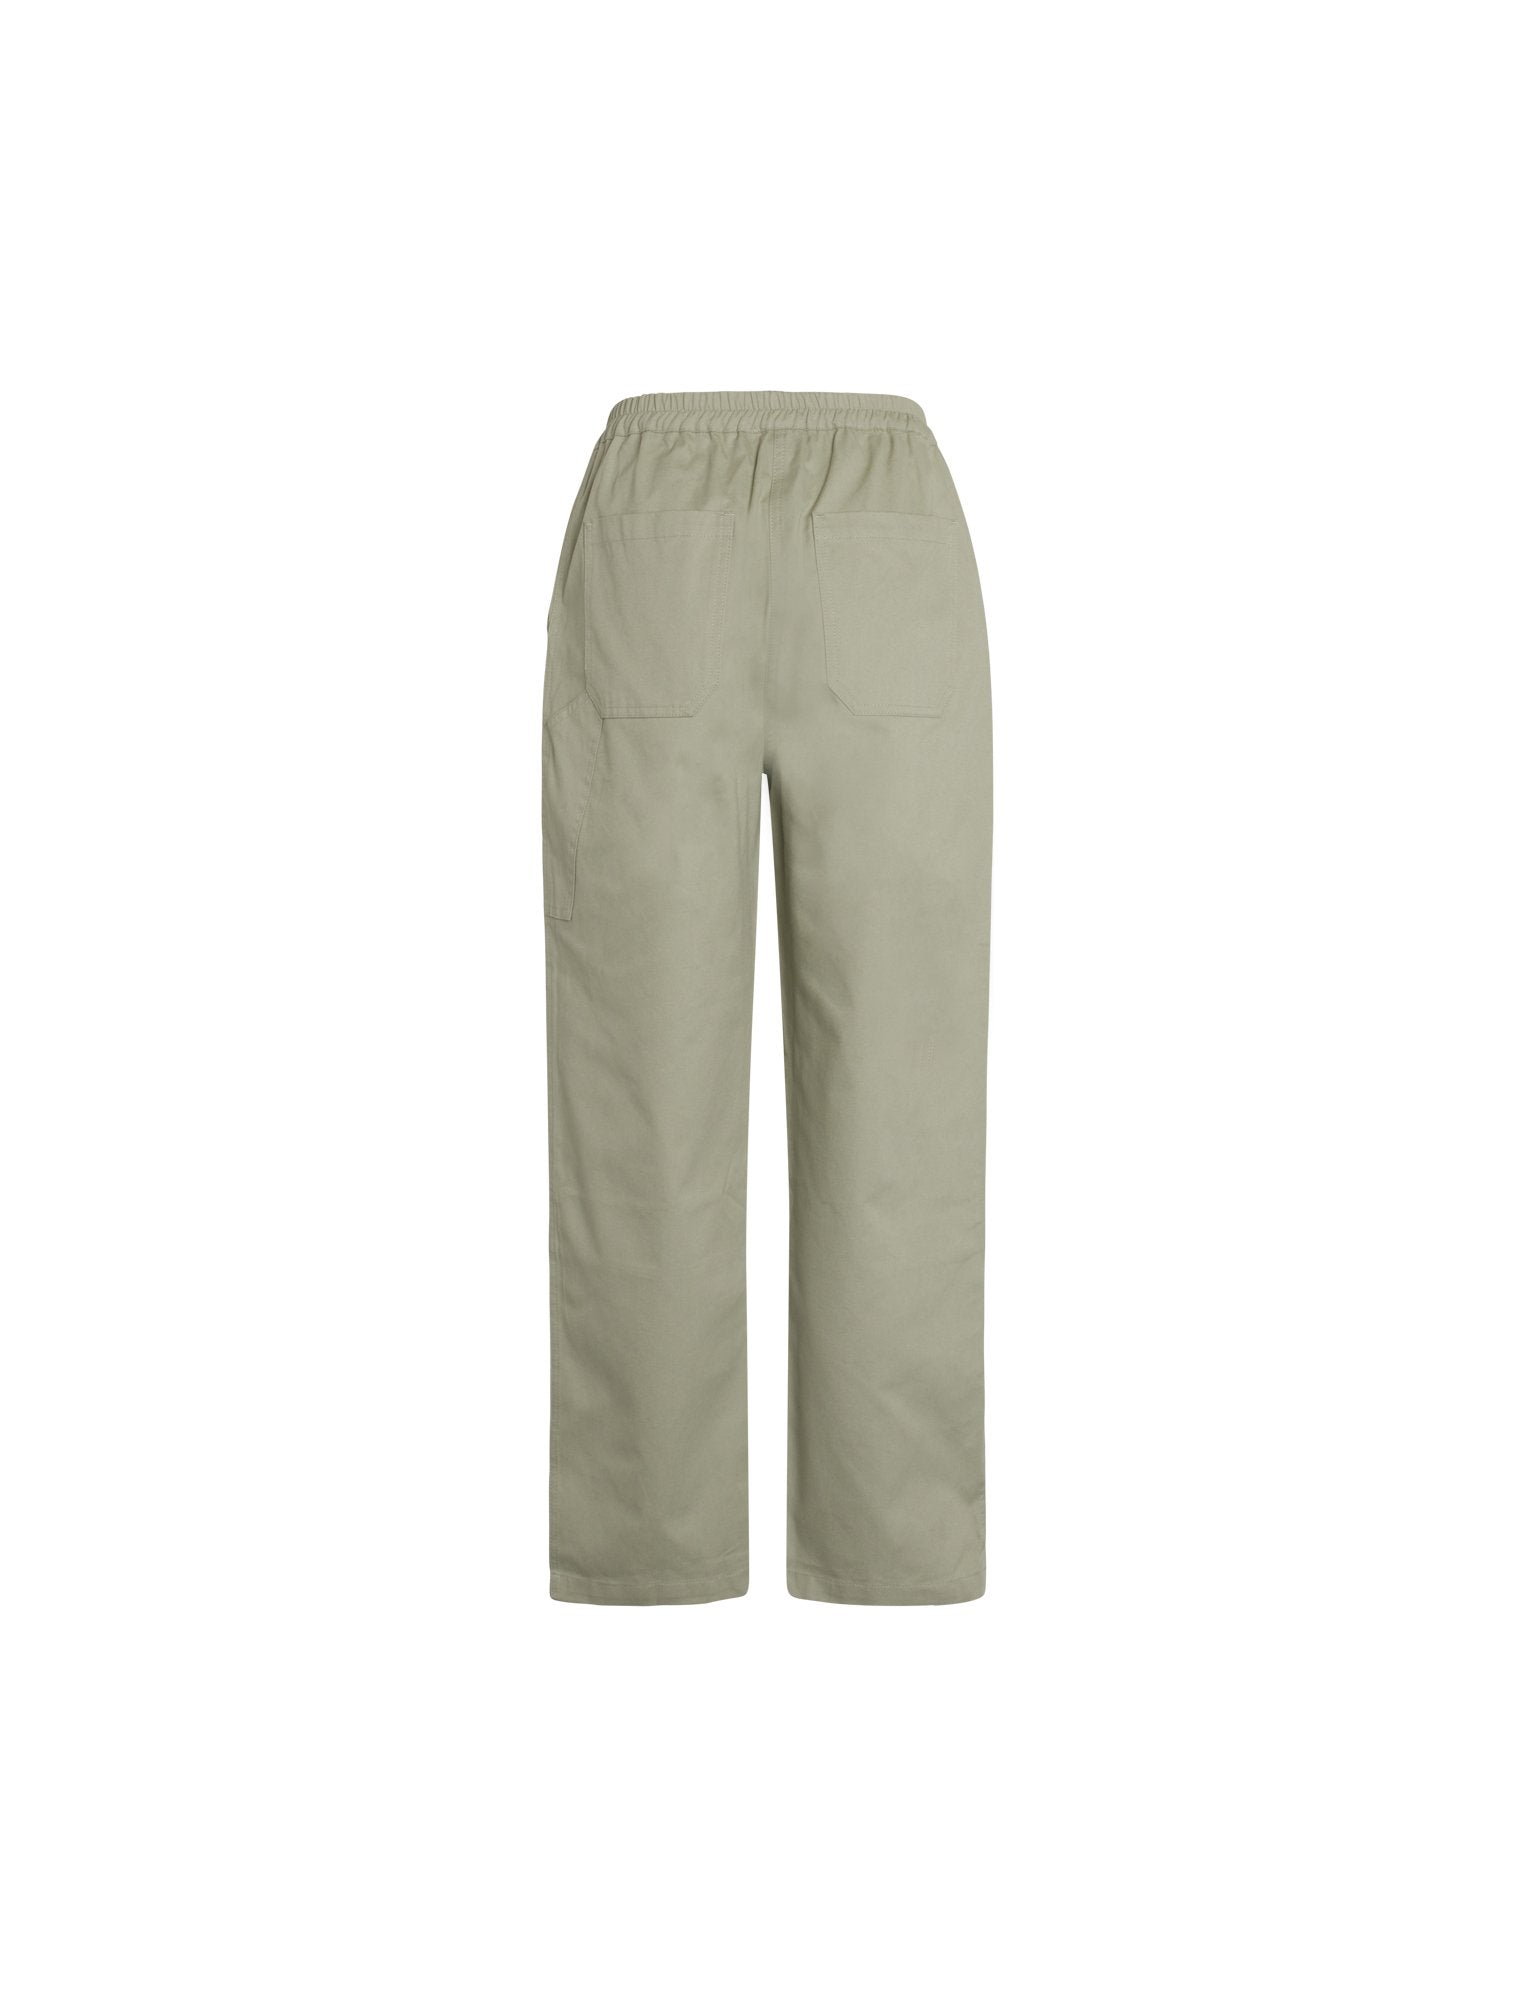 pants Twill Blend Poline